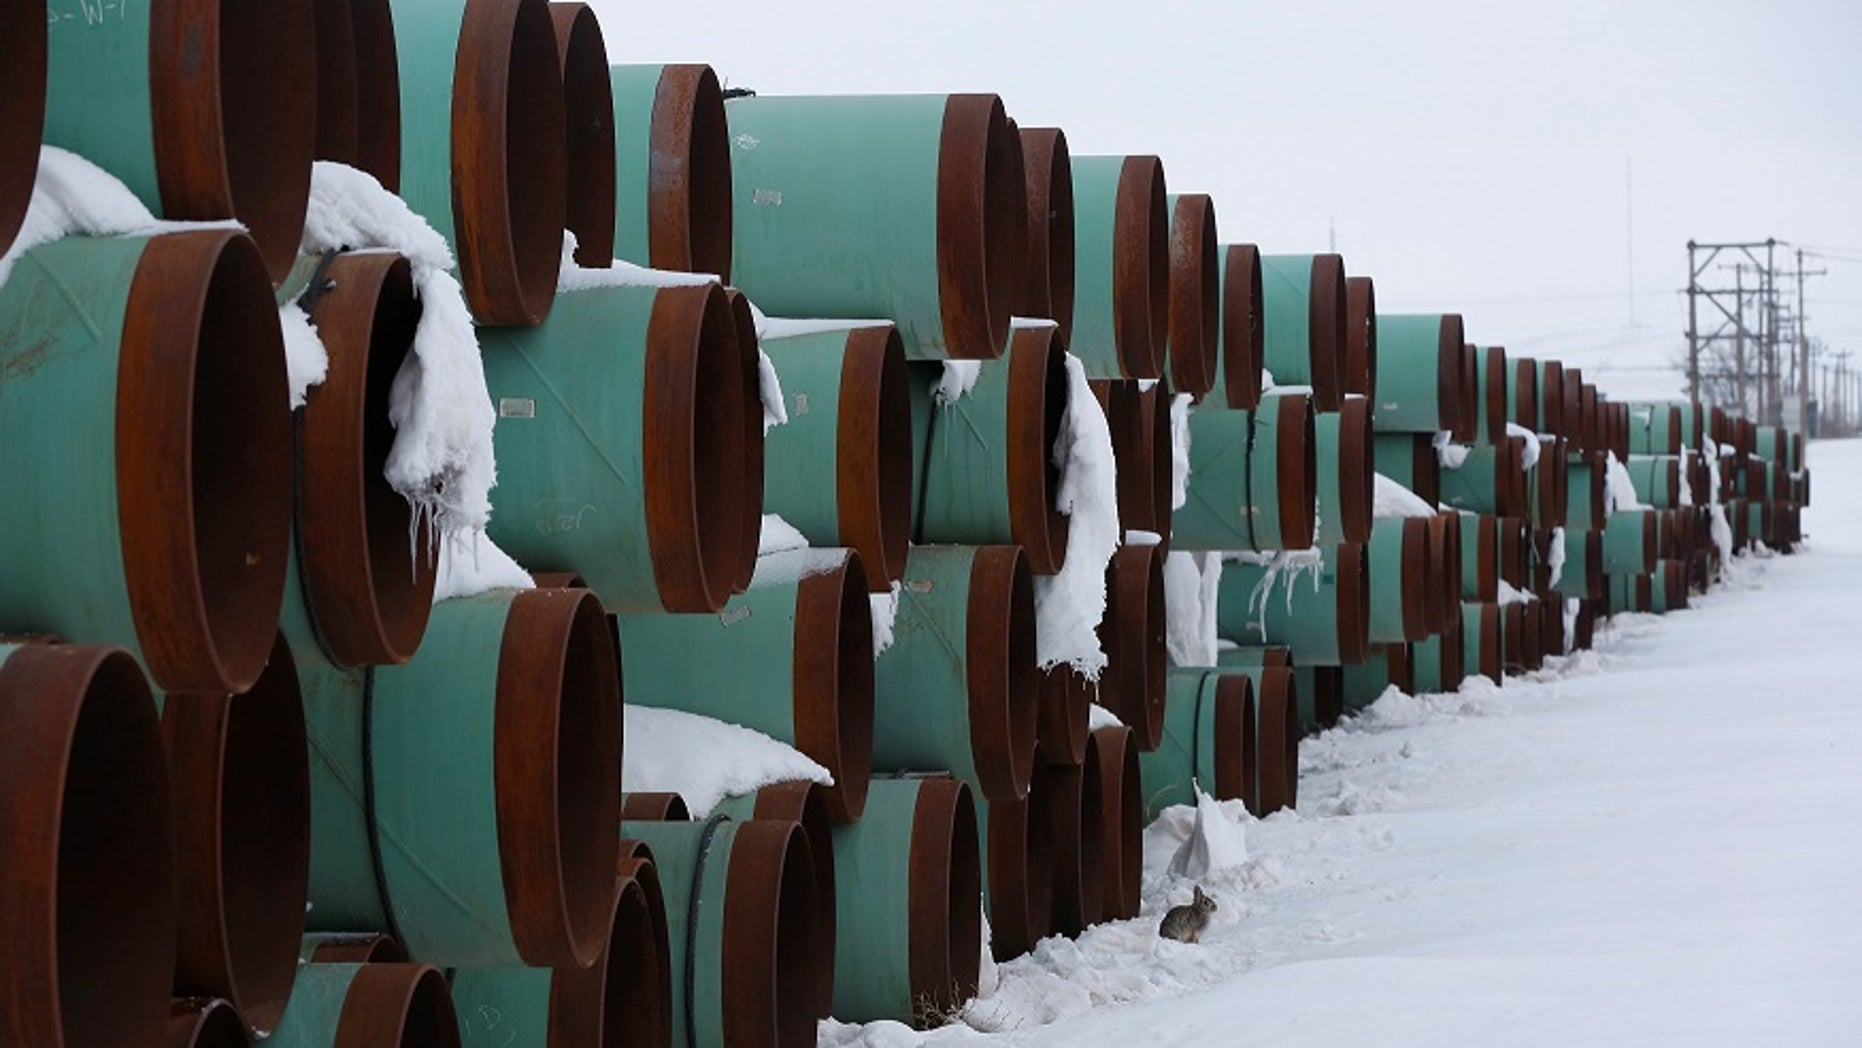 In Gascoyne, North Dakota, there is a storage depot for Transcanada Corp's planned Keystone XL pipeline.